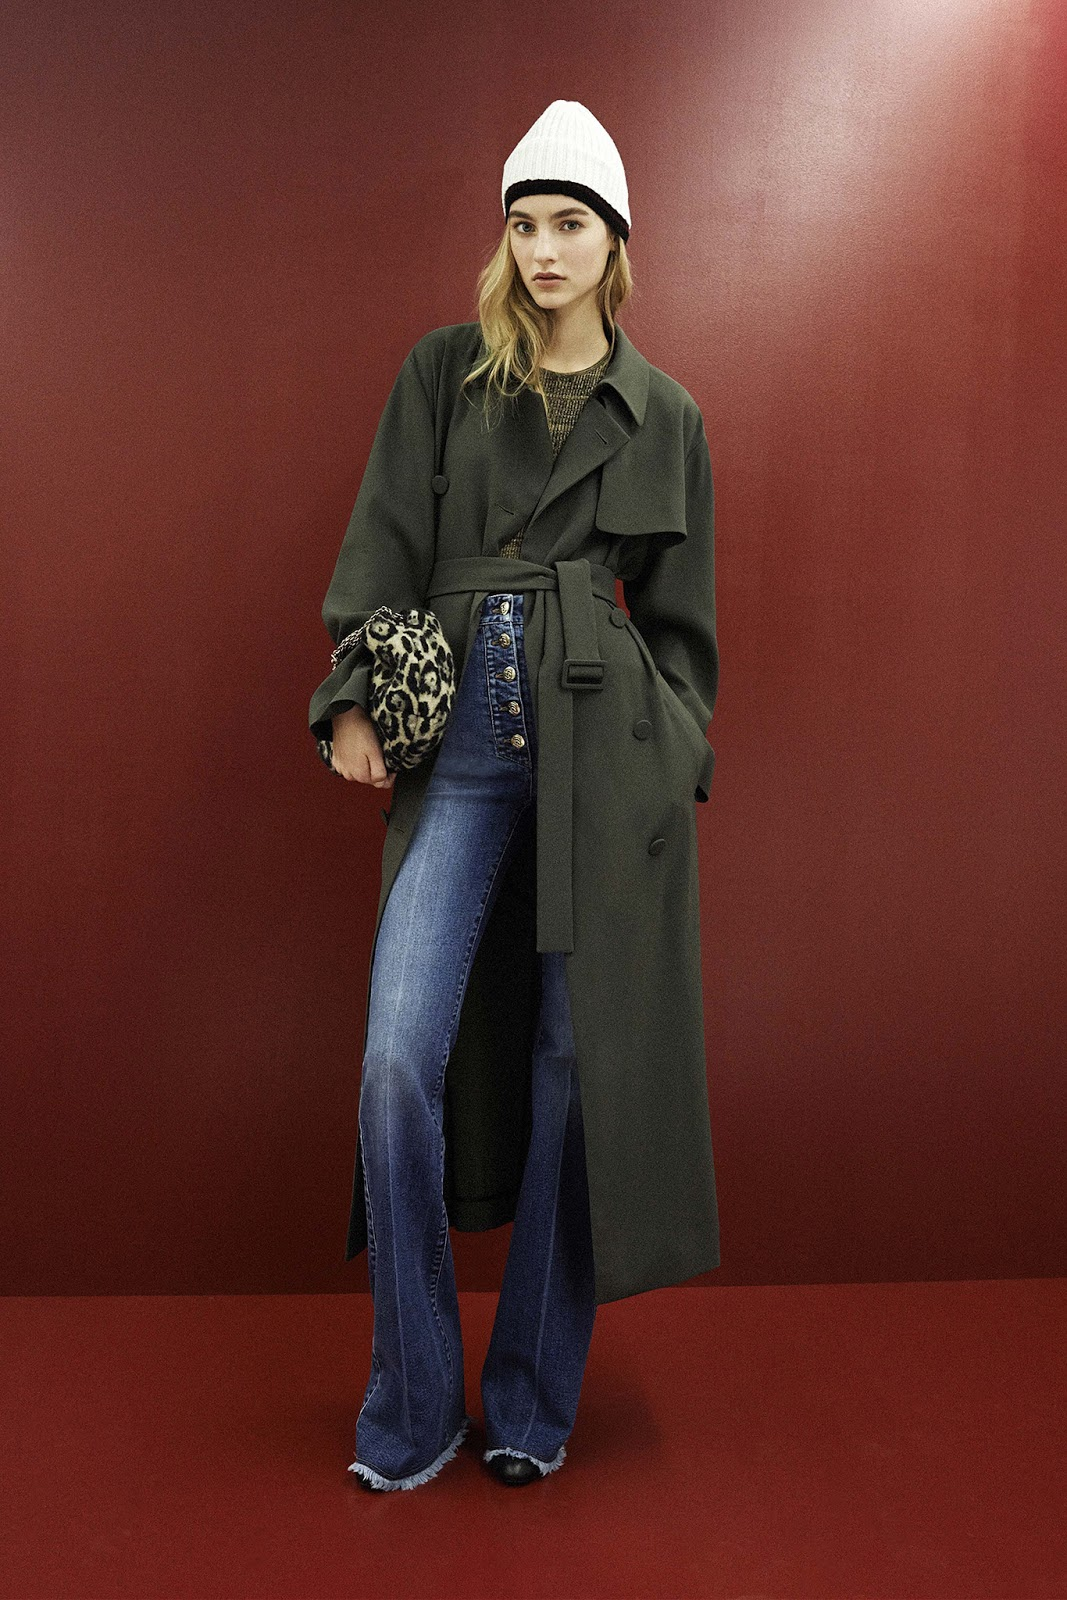 transitional style inspiration from the catwalk / how to wear denim fall-winter 2015 / trends / inspiration / Sonia Rykiel / via fashionedbylove.co.uk / british fashion & style blog